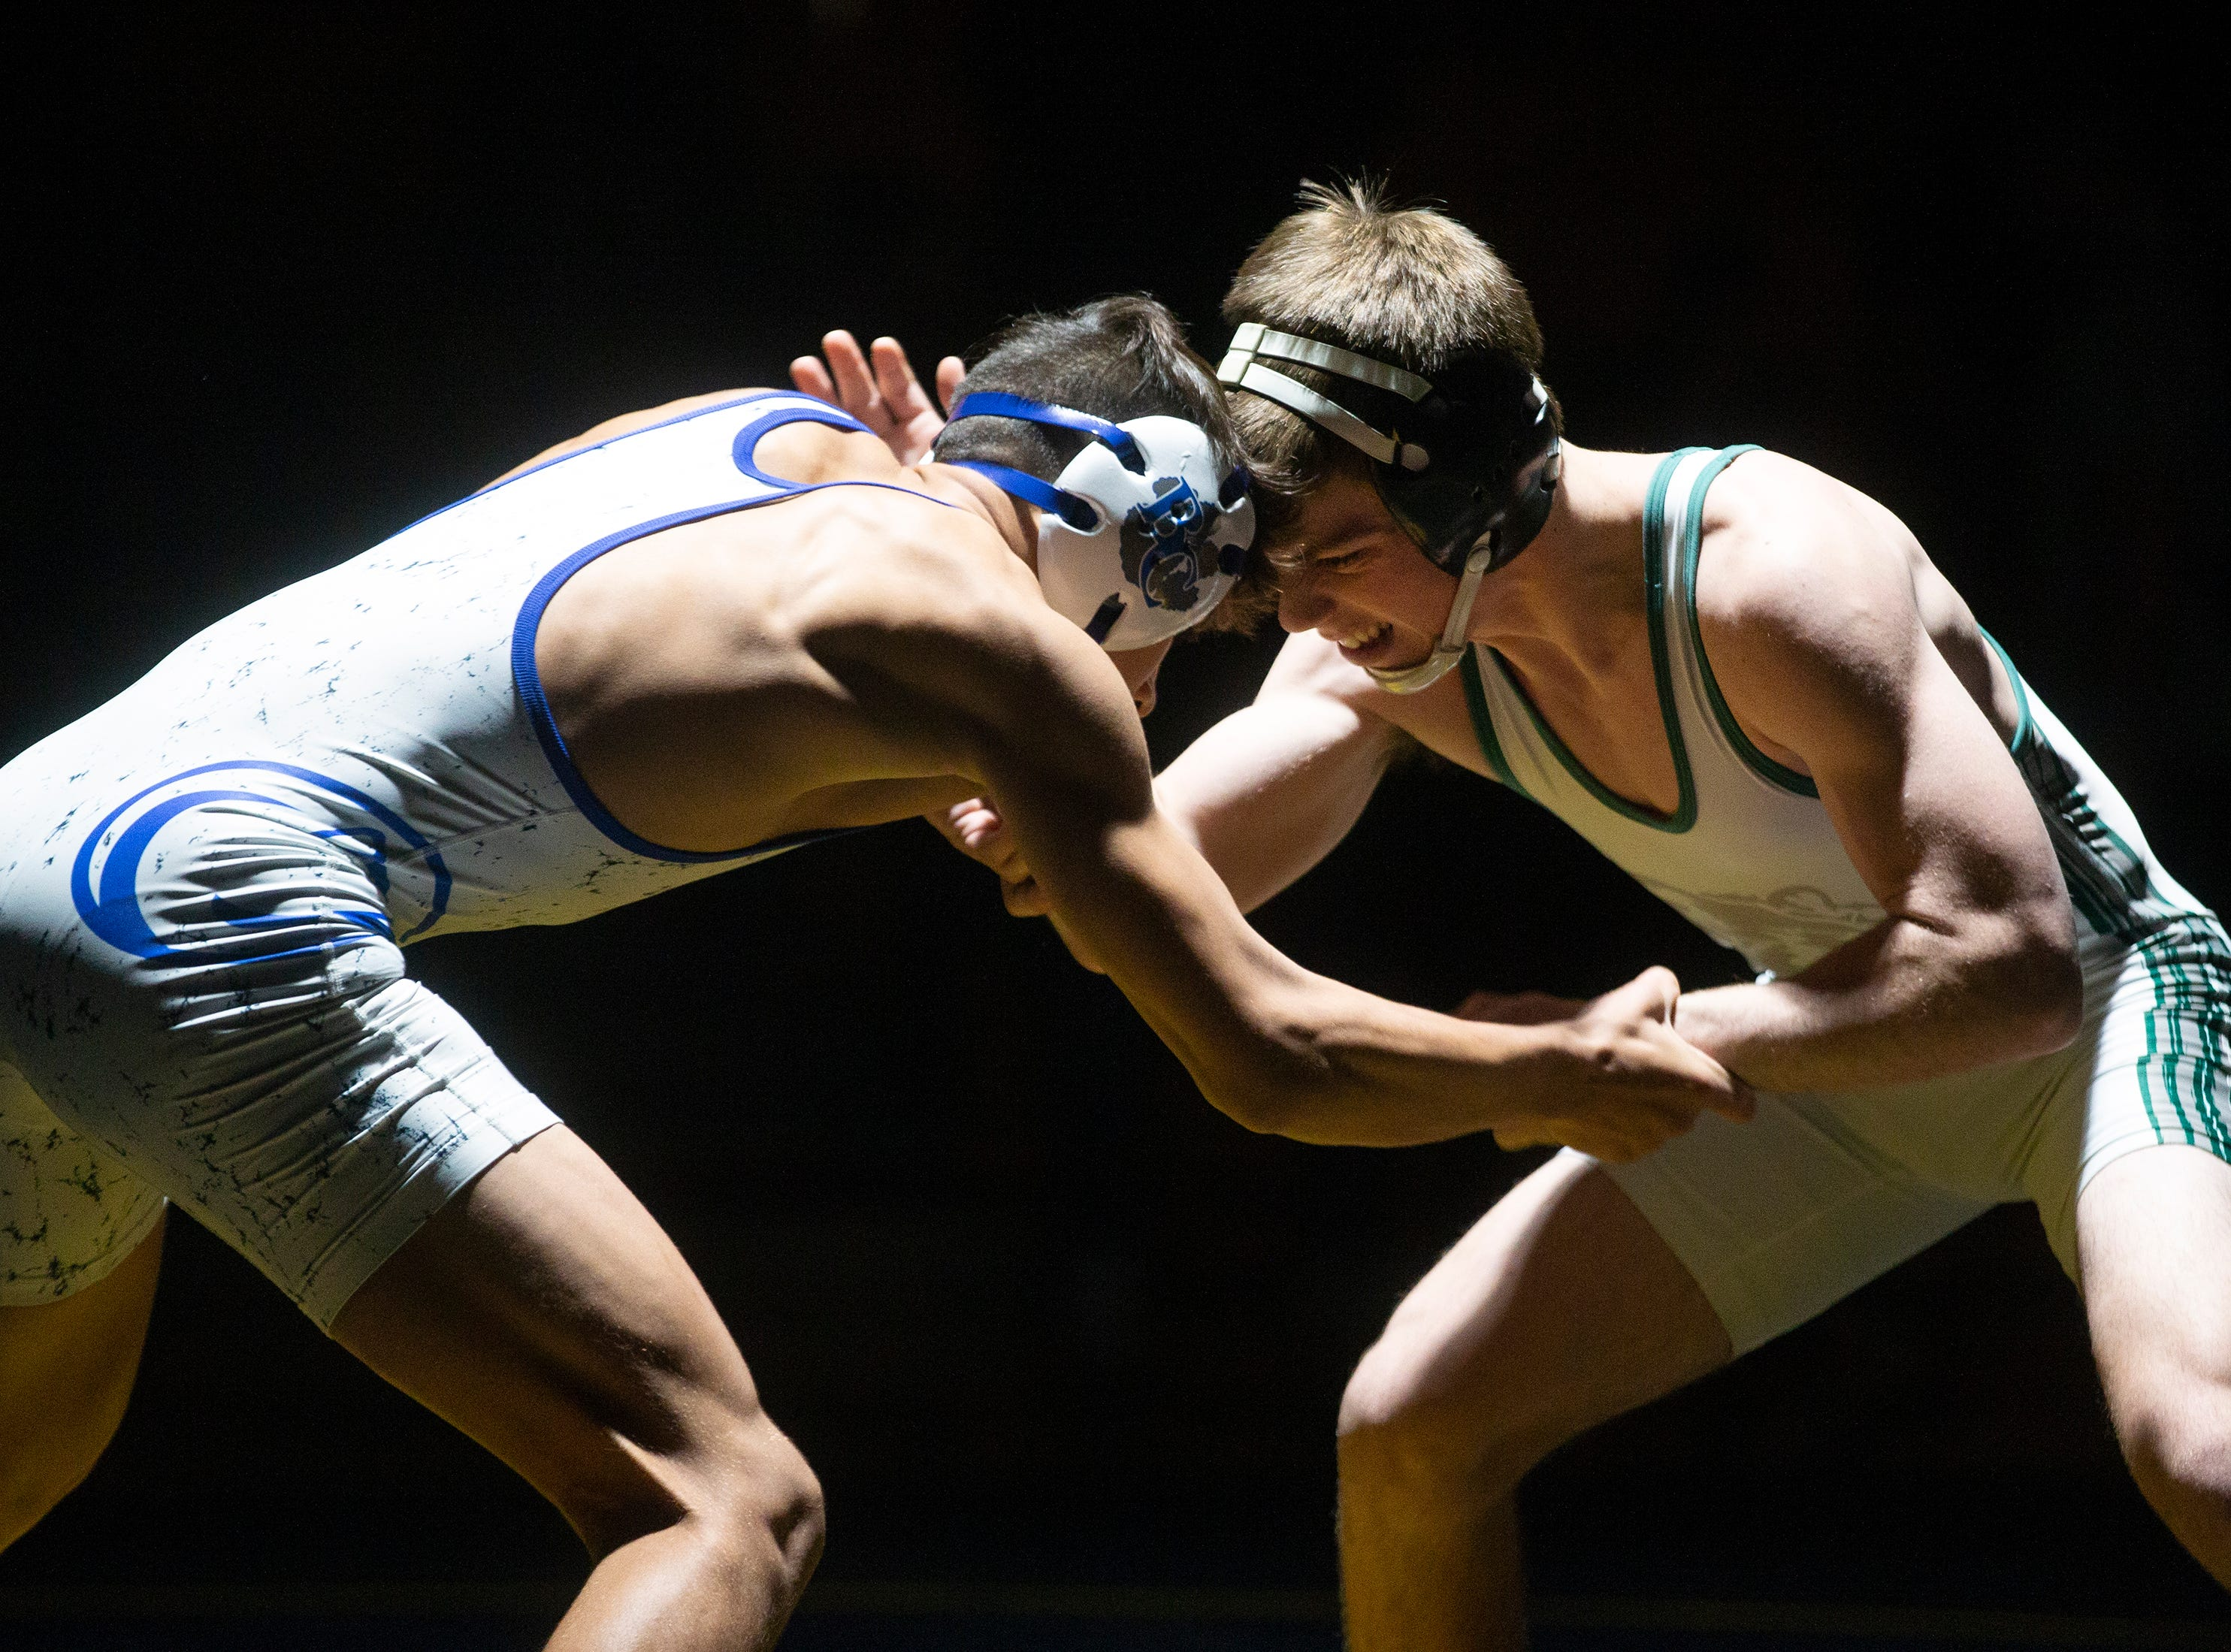 Barron G. Collier High School's Roy Chiong, left, takes on Palmetto Ridge High School's Ben McCallister in the 120-pound match up during the Collier County Athletic Conference wrestling championship, Wednesday, Jan. 9, 2018, at Naples High School.